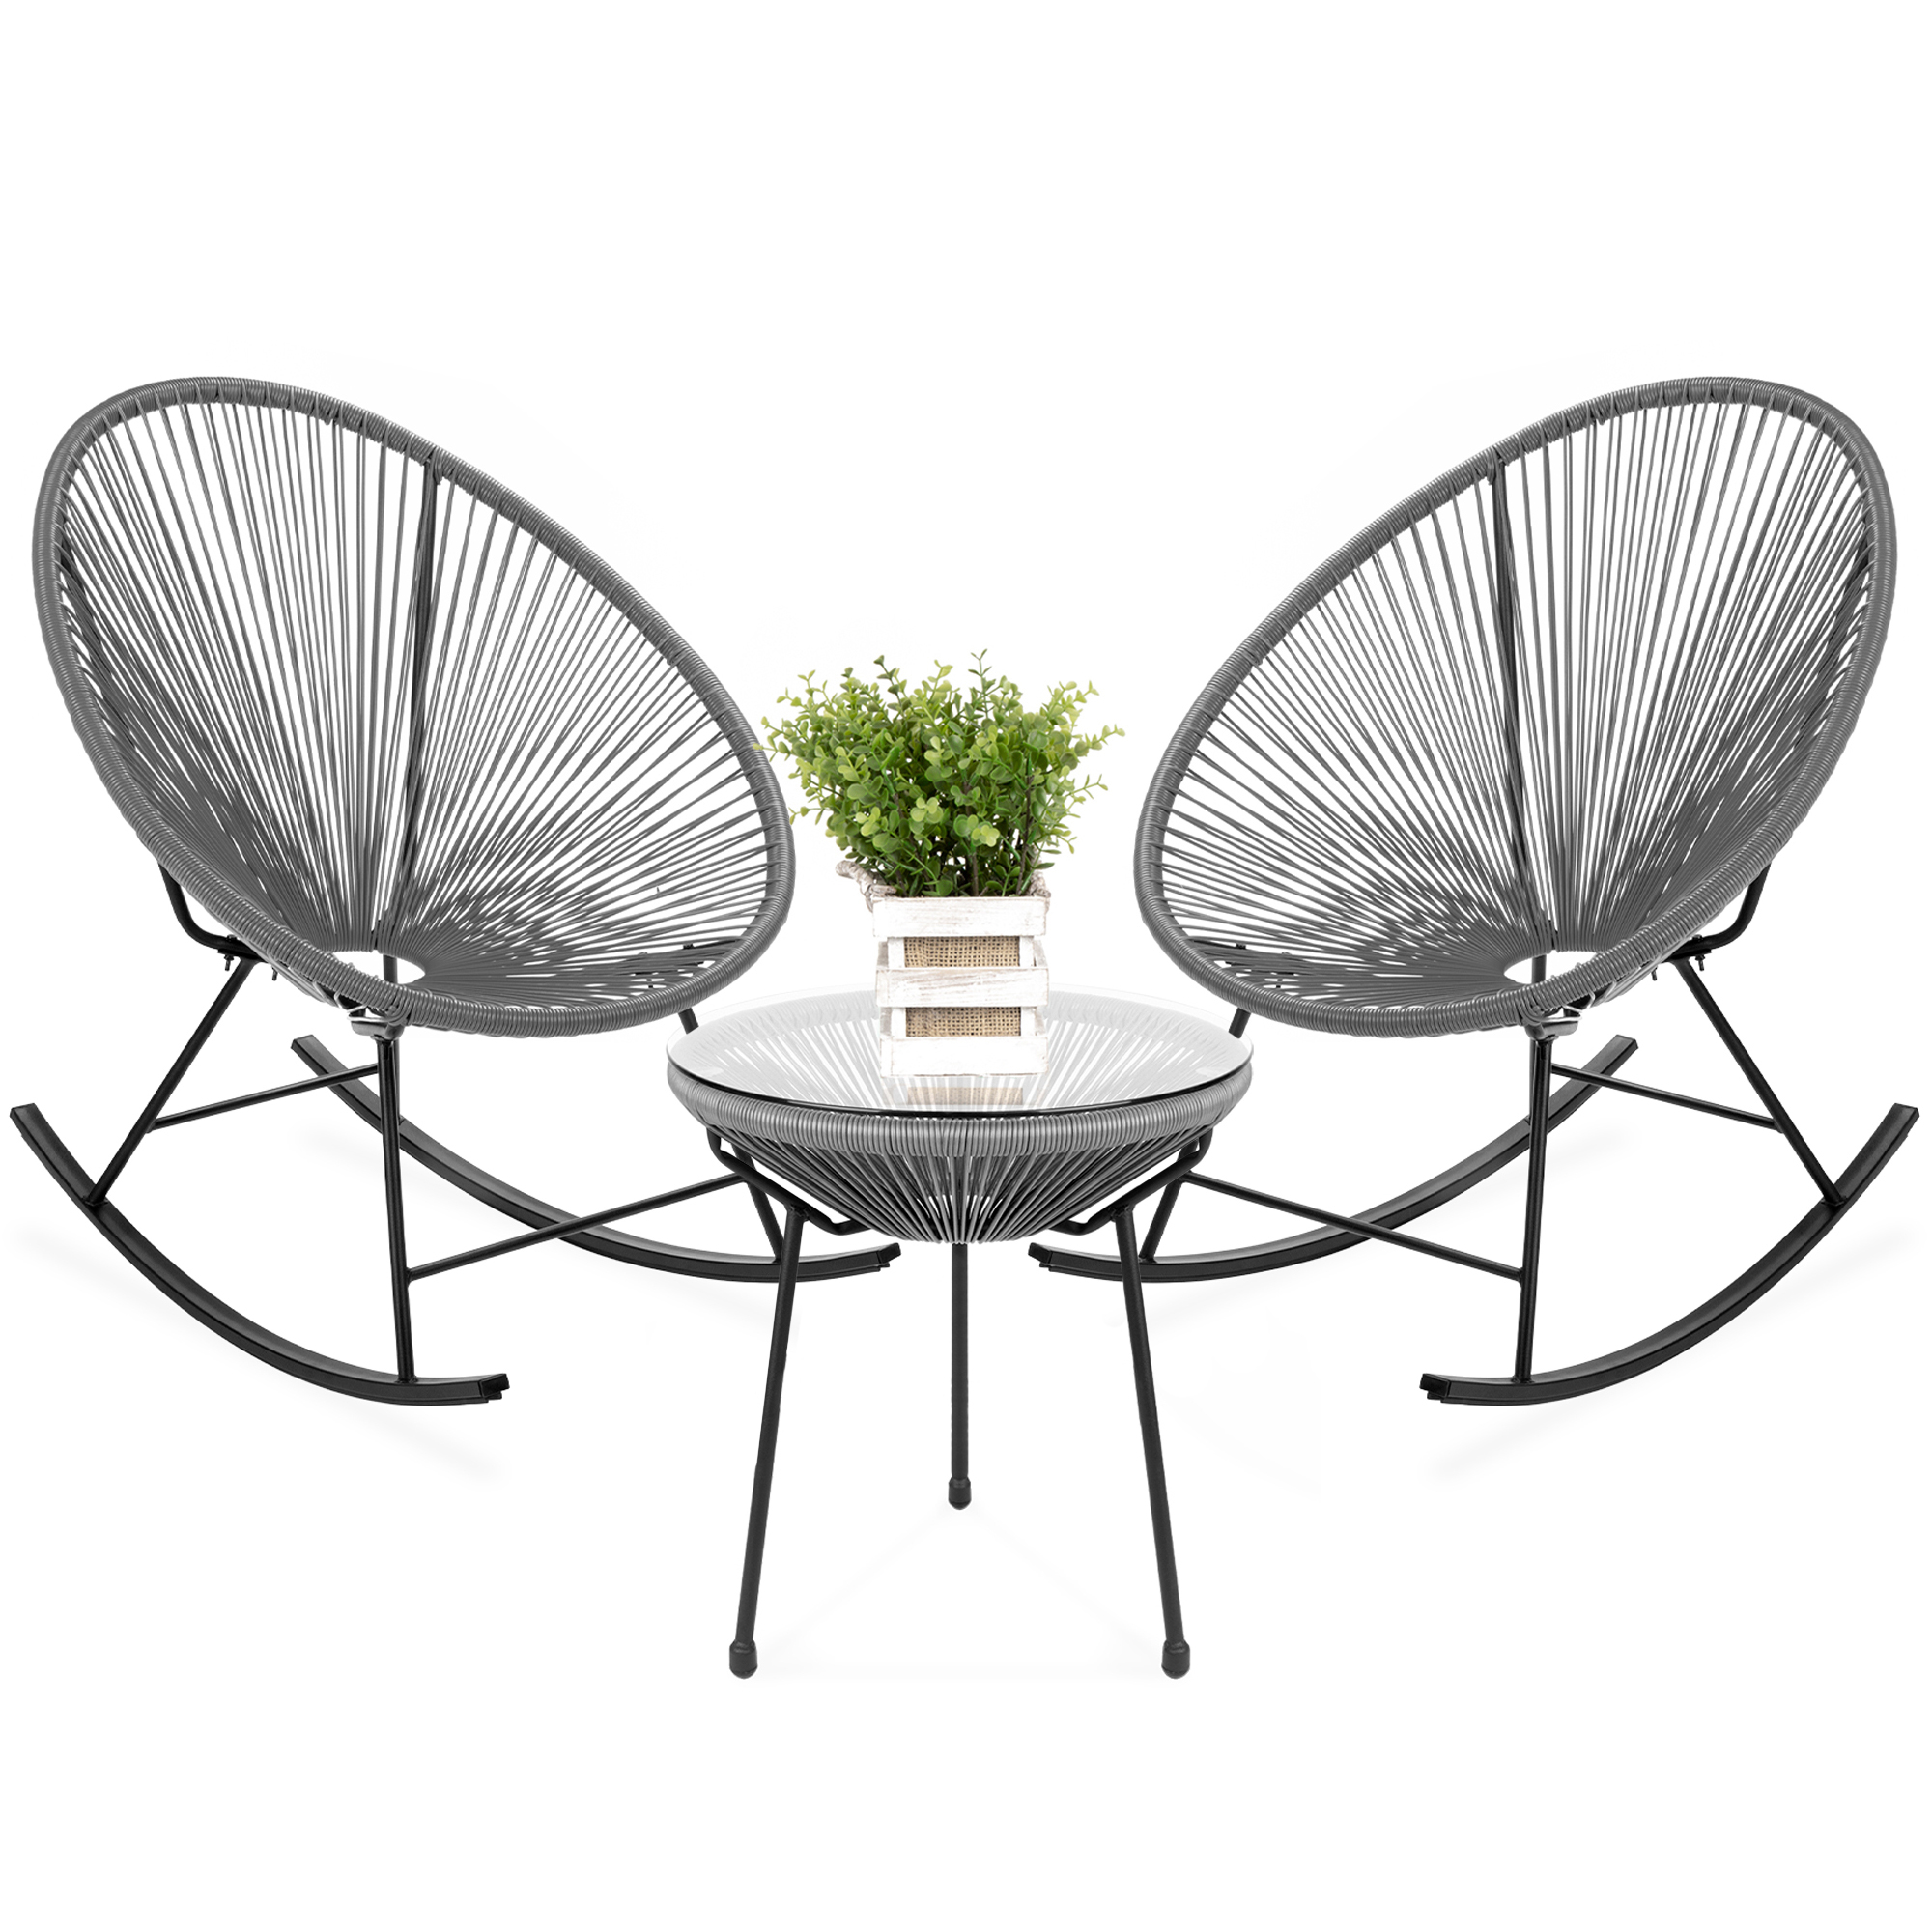 best choice products 3 piece all weather patio woven rope acapulco bistro furniture set w rocking chairs table gray walmart com